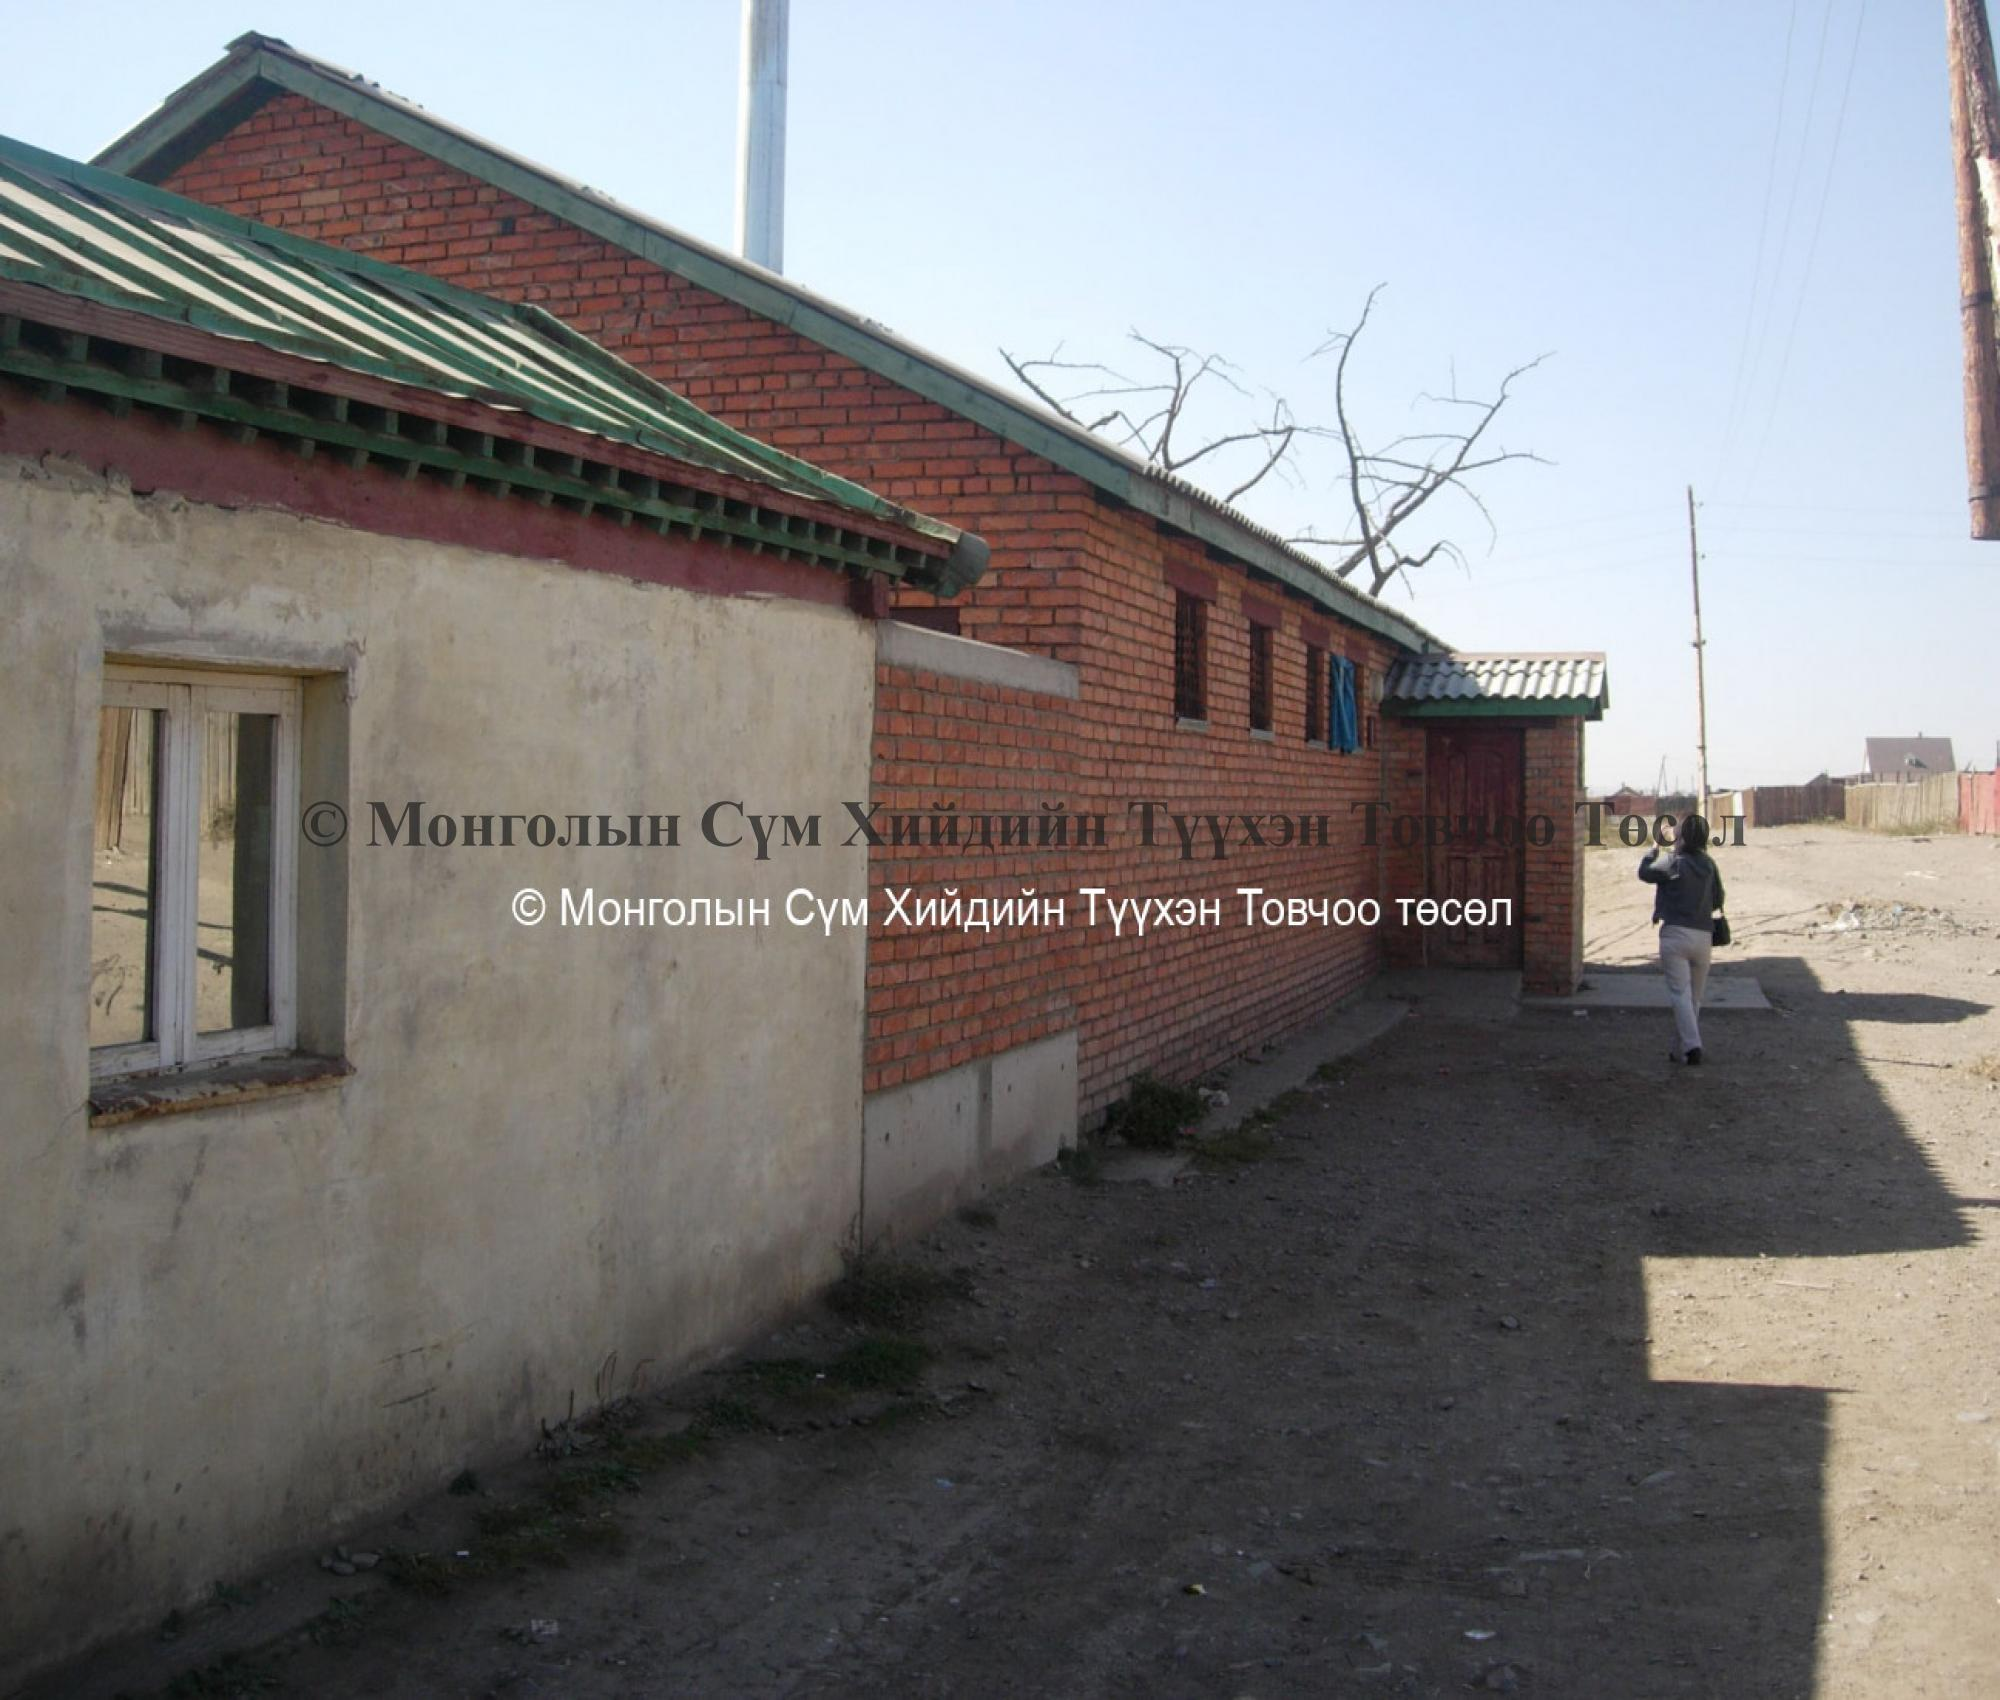 Community Centre situated on North side of temple